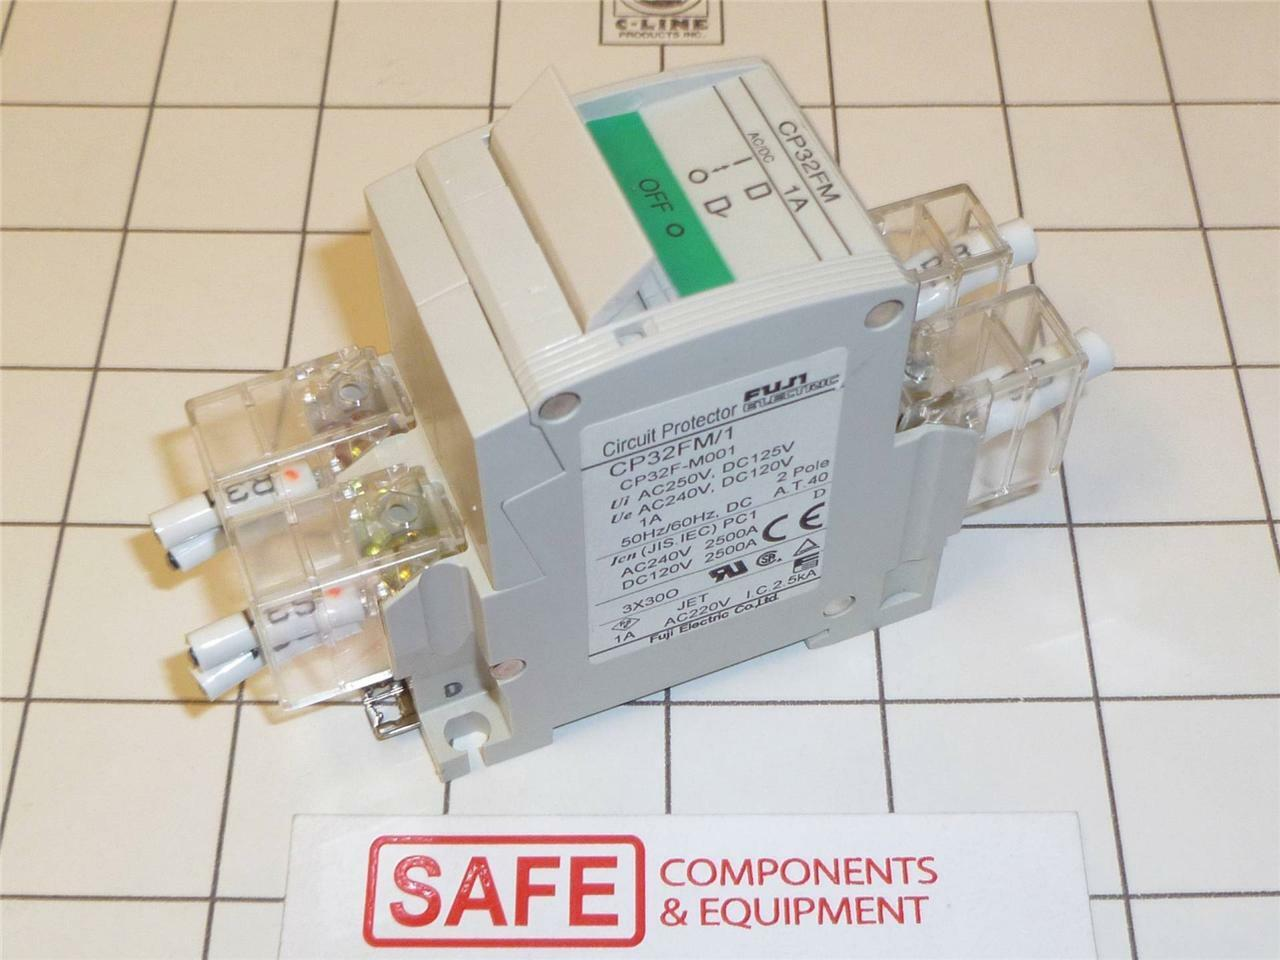 Fuji Cp32fm1 Circuit Protector Breaker 2 Pole Medium Delay 1a Din Home Residential Zinsco Type R38 Rail K35 1 Of 5